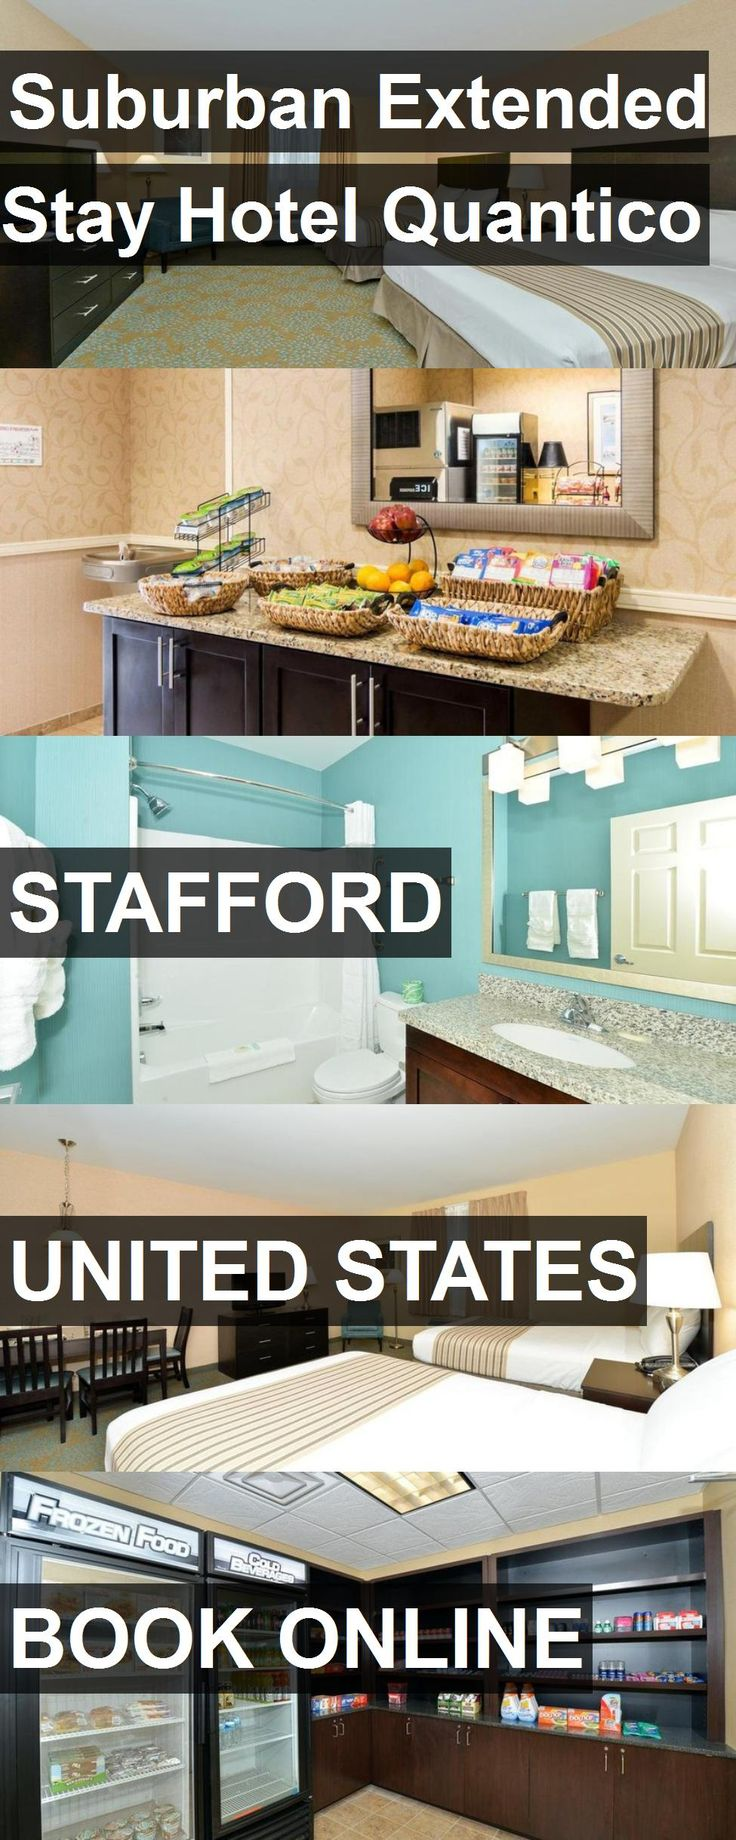 Suburban Extended Stay Hotel Quantico in Stafford, United States. For more information, photos, reviews and best prices please follow the link. #UnitedStates #Stafford #travel #vacation #hotel